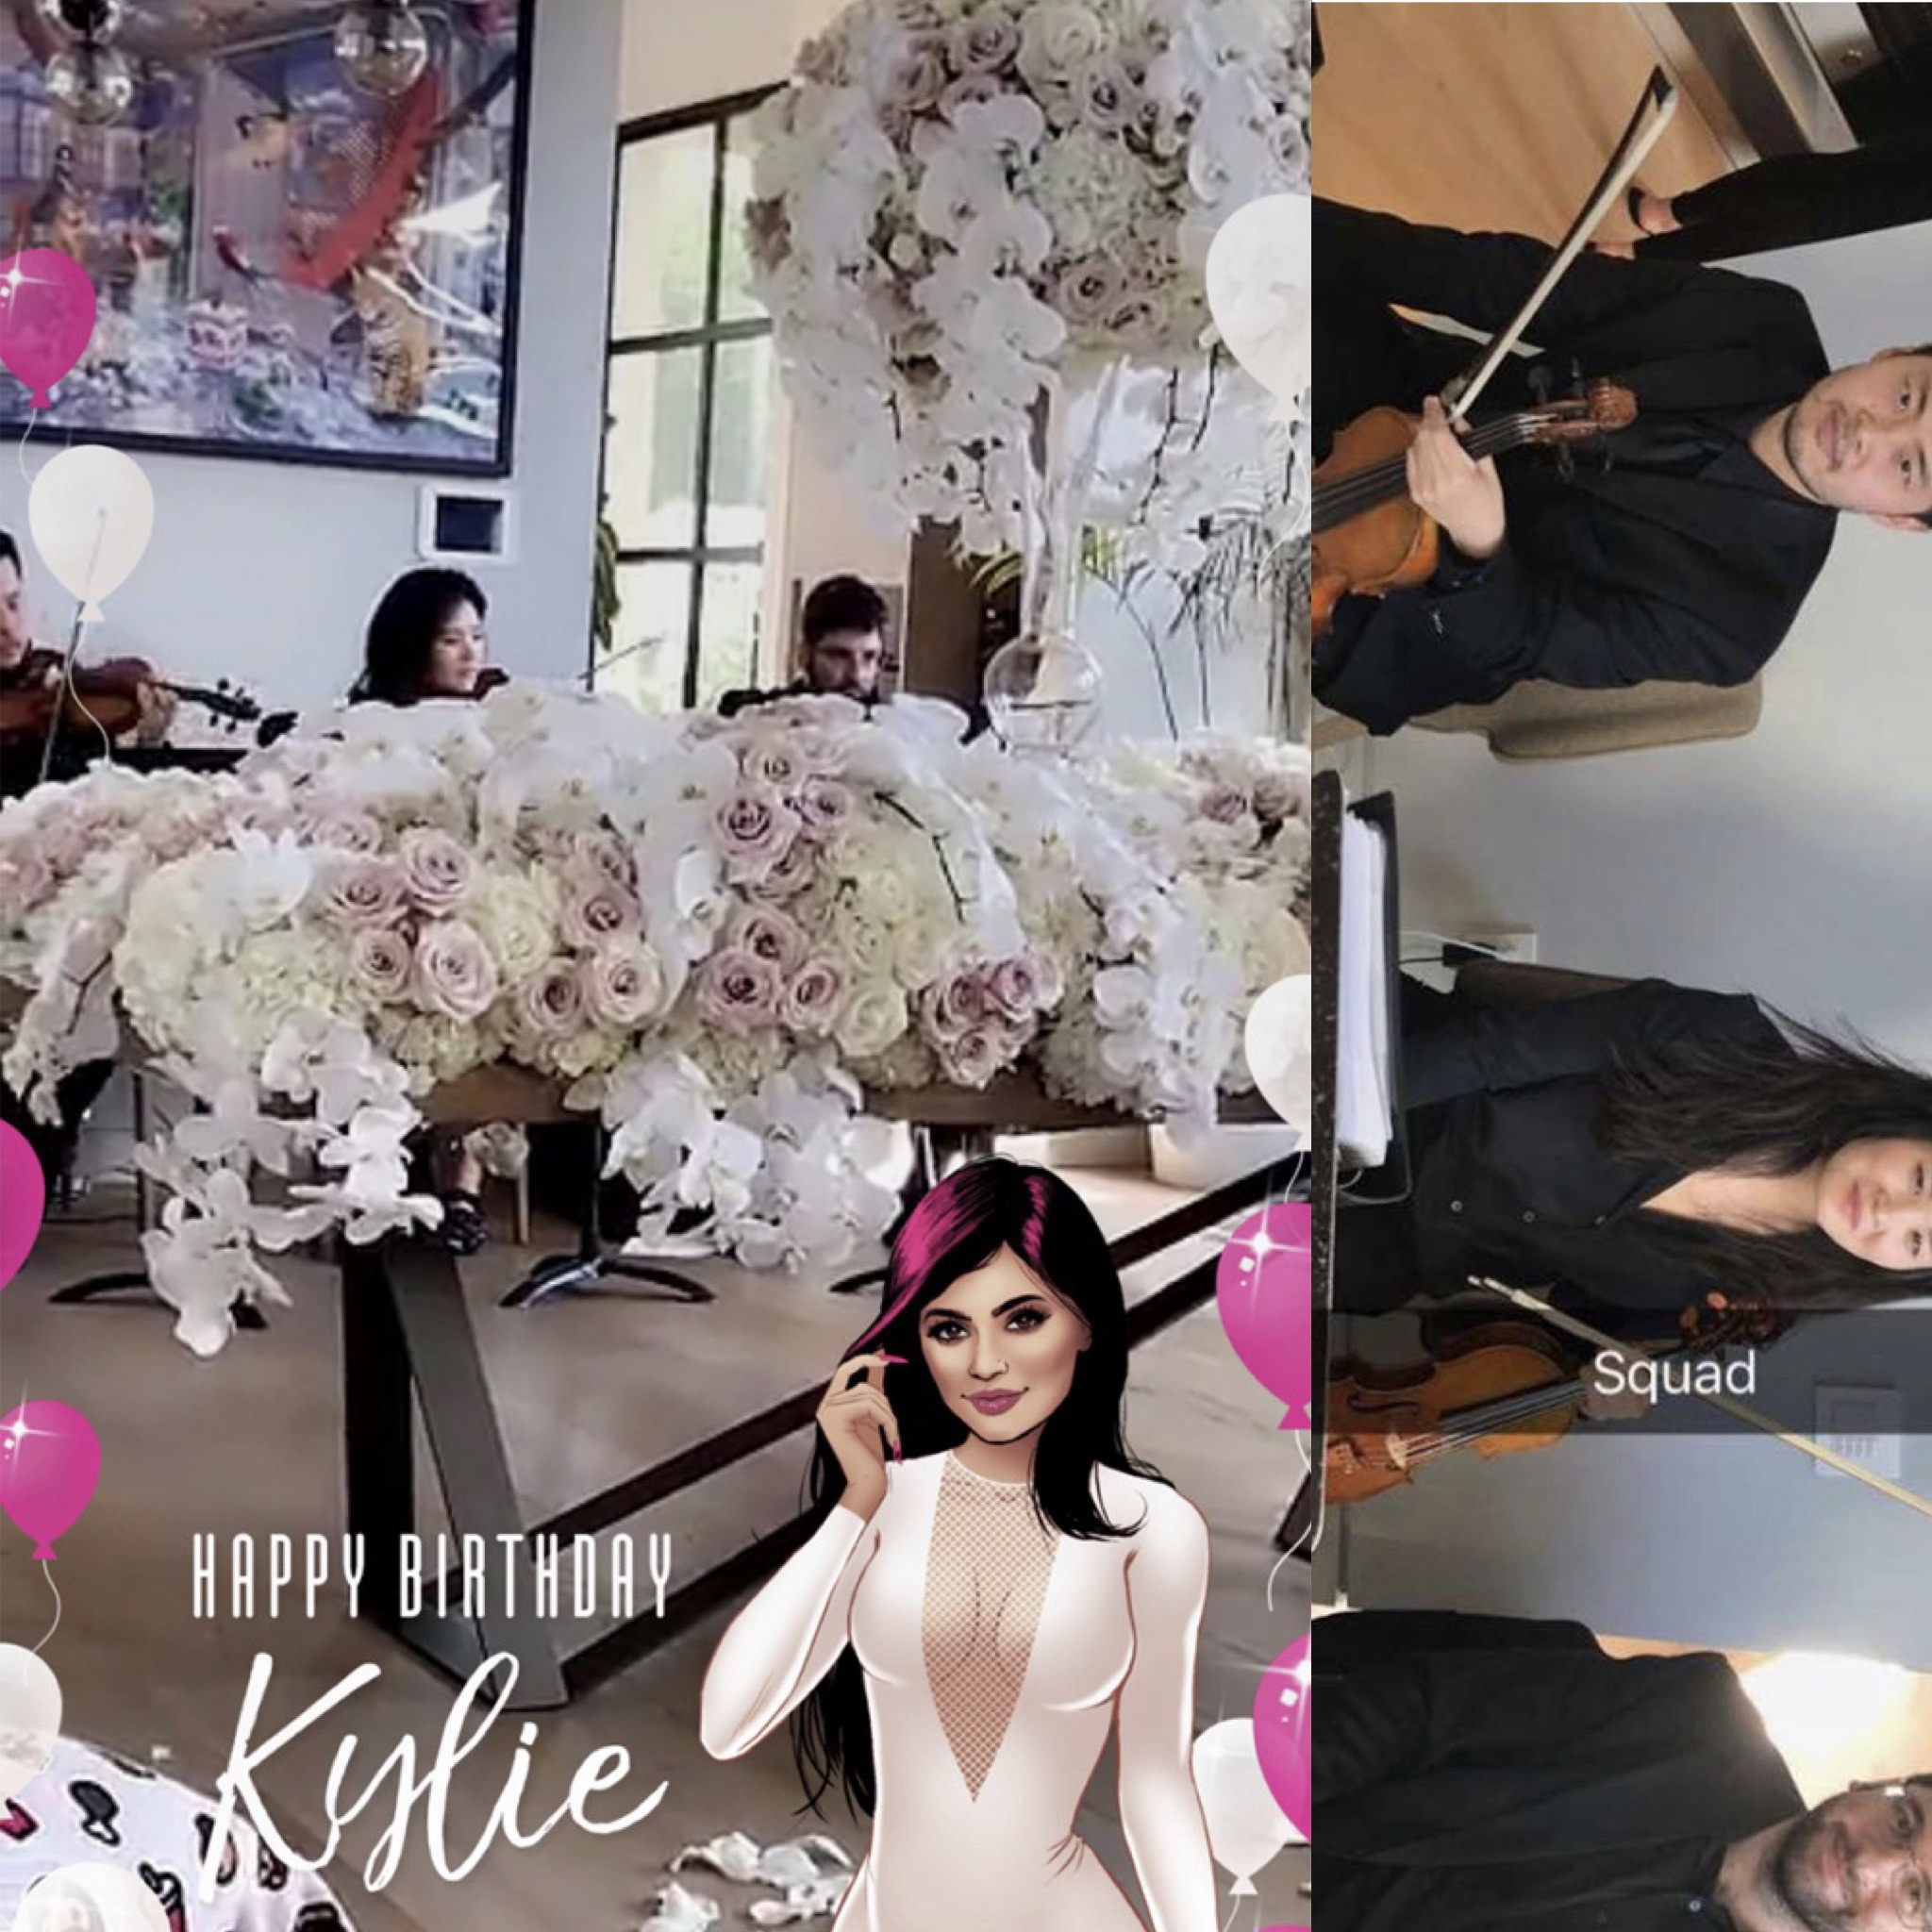 Surprise 20th Birthday for Kylie Jenner (Snapchat/Kylie Jenner)